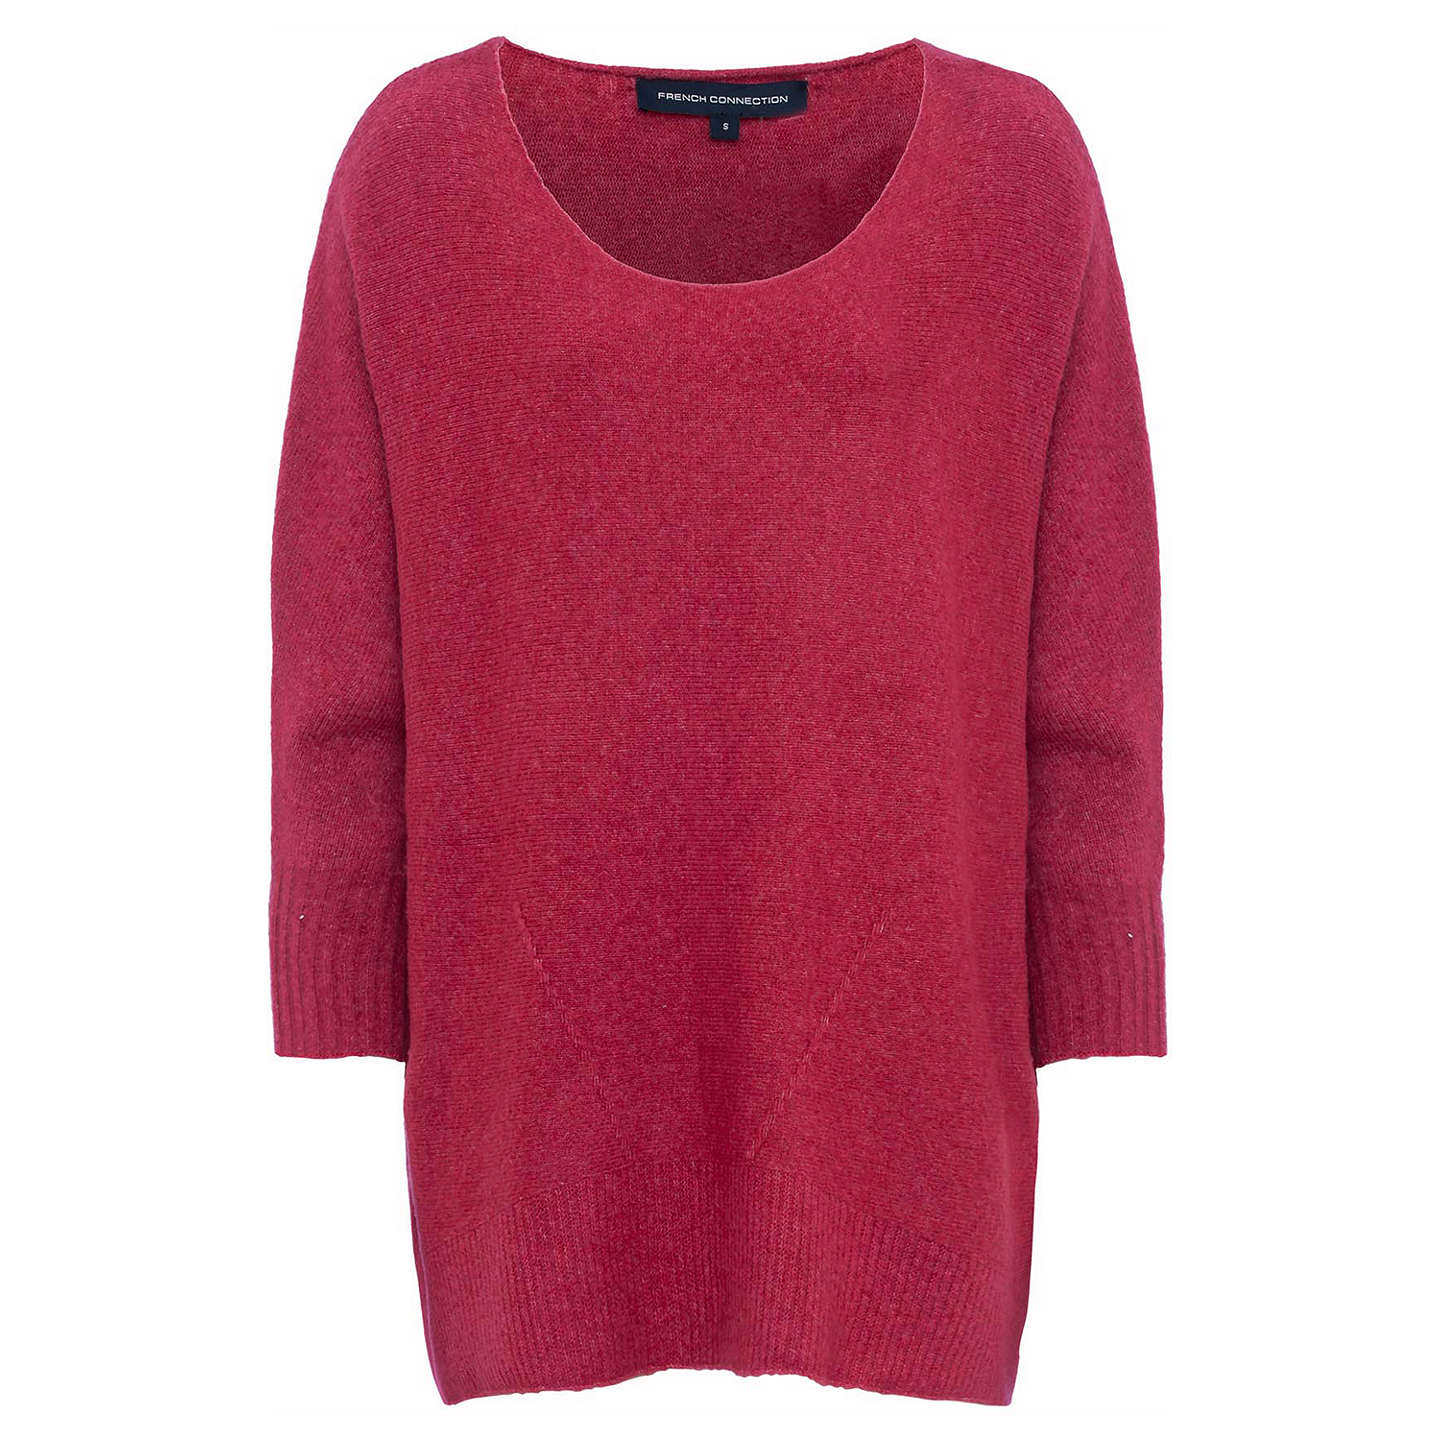 BuyFrench Connection Cloud Knit Jumper, Radicchio, XS Online at johnlewis.com